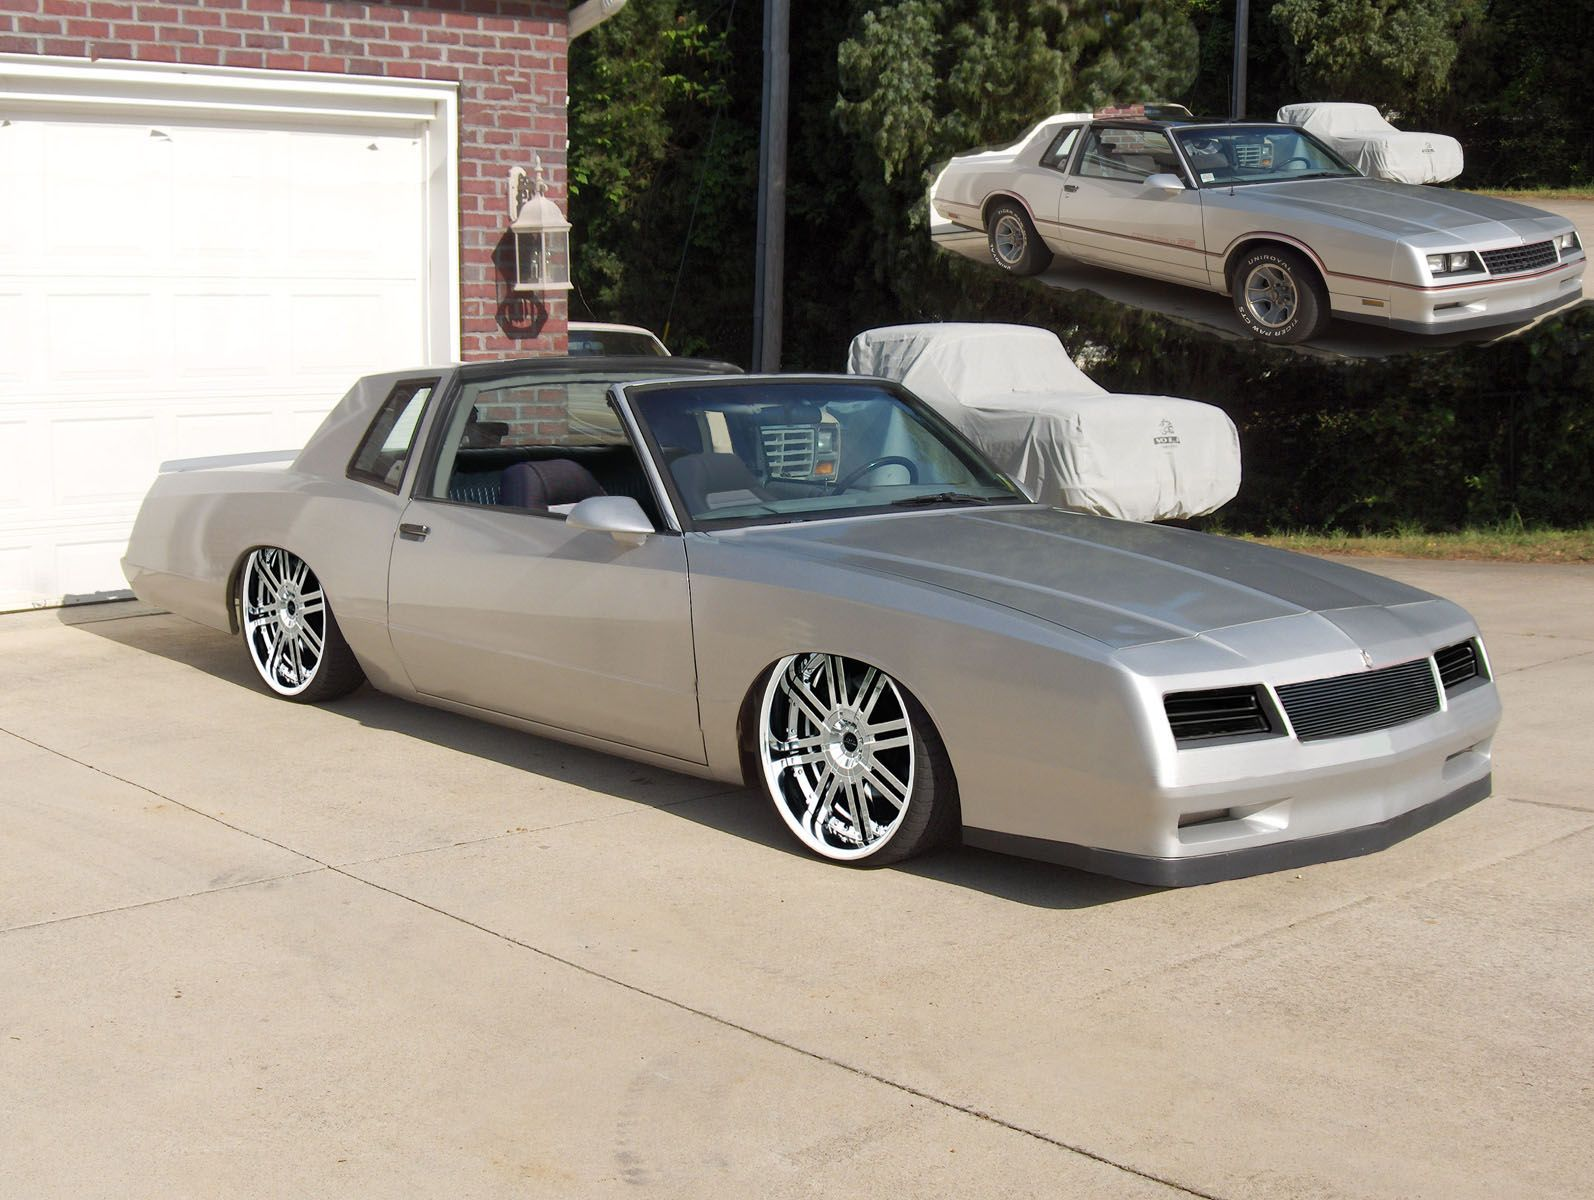 Chevrolet Monte Carlo Lt With Images Chevy Muscle Cars